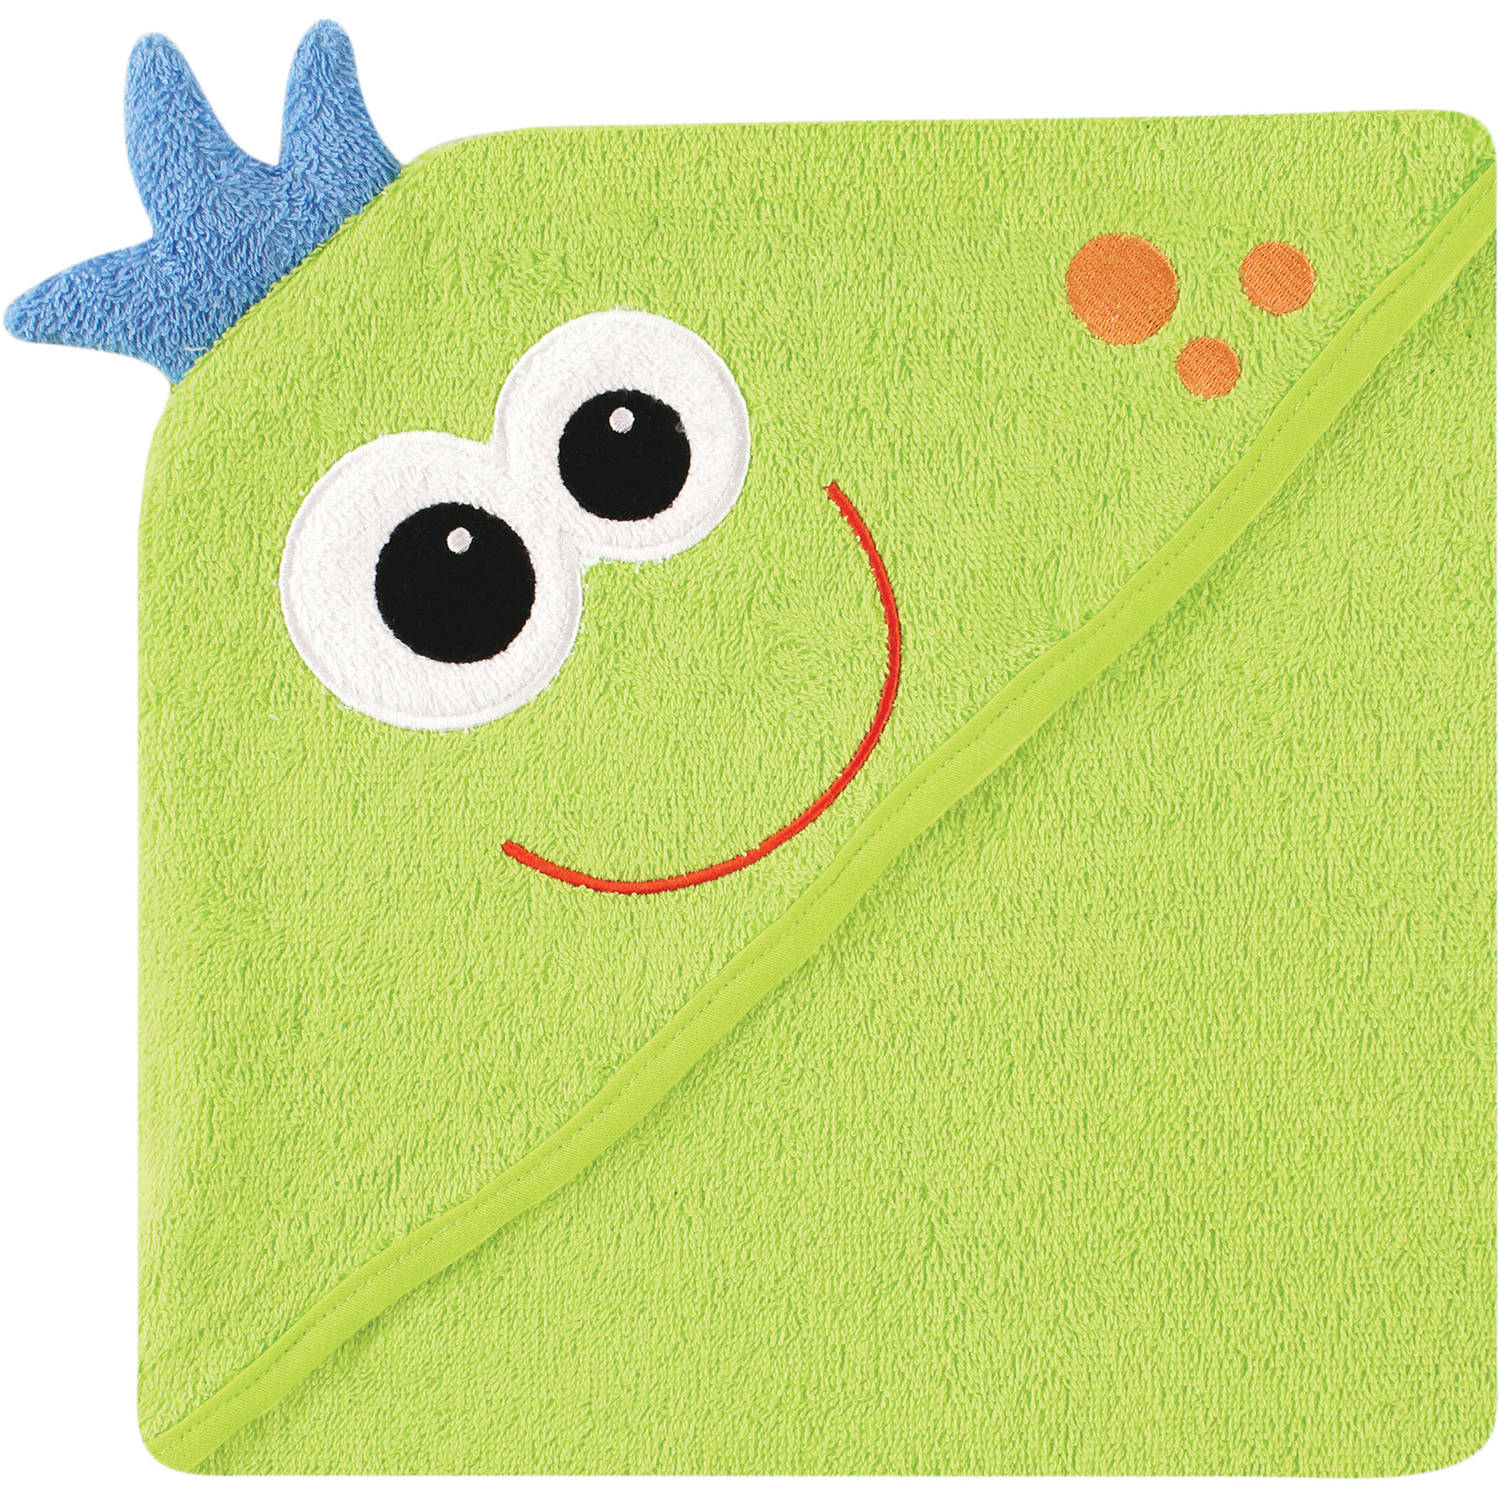 Luvable Friends Hooded Towel with Embroidery, Monster